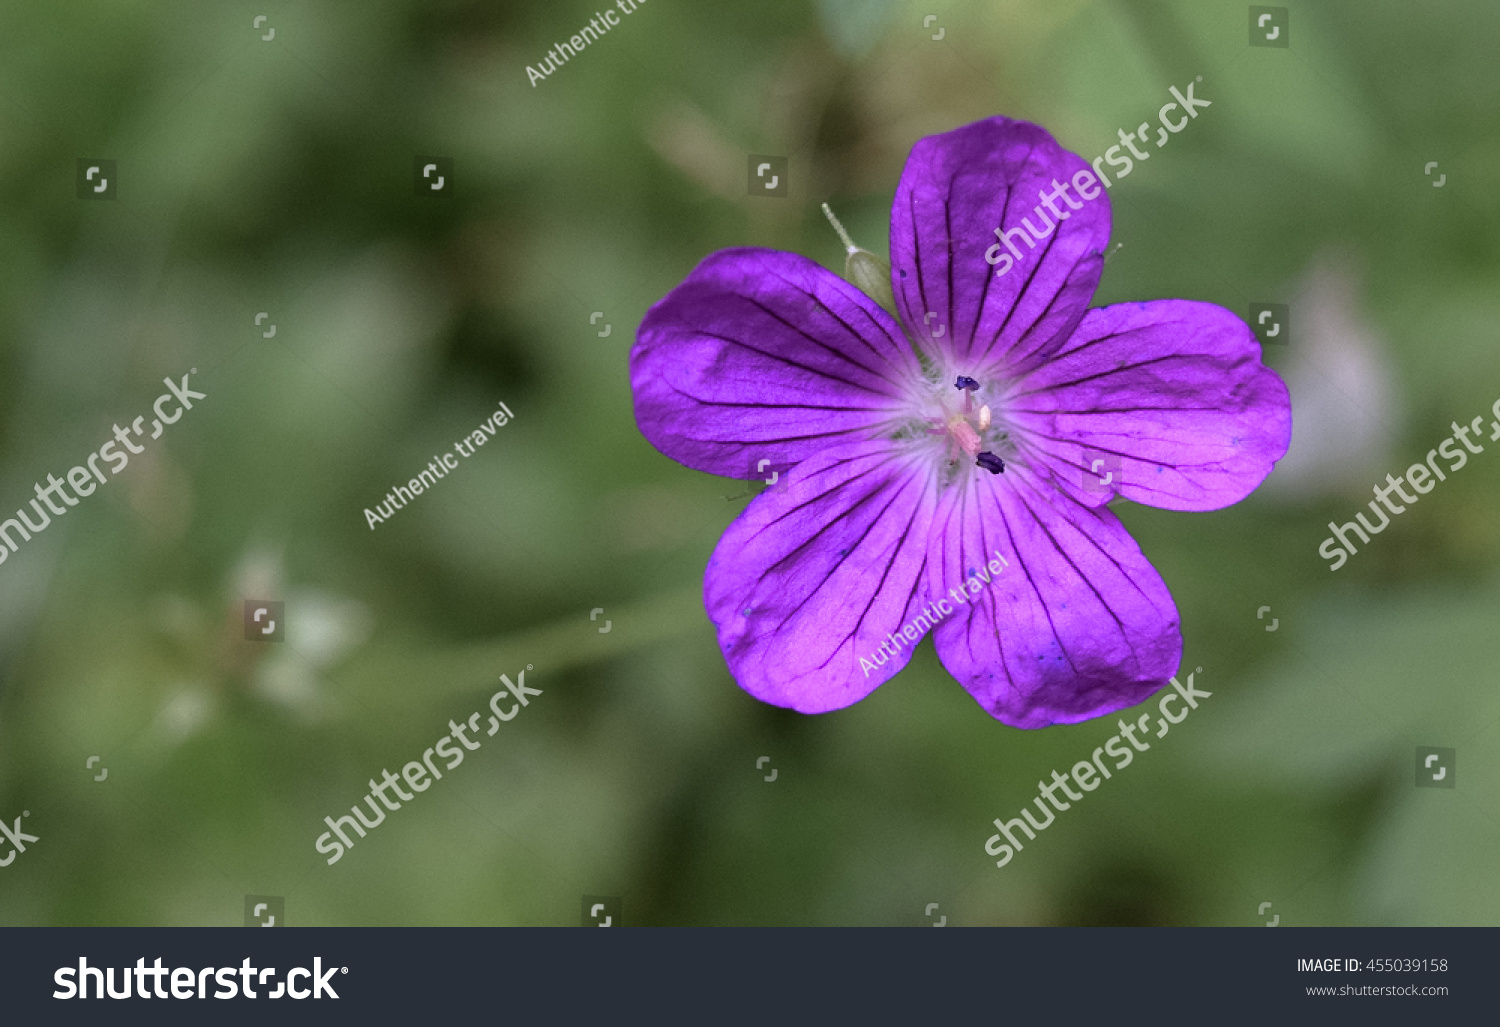 Rare Unique Flowers Forest Eastern Europe Stock Photo (Edit